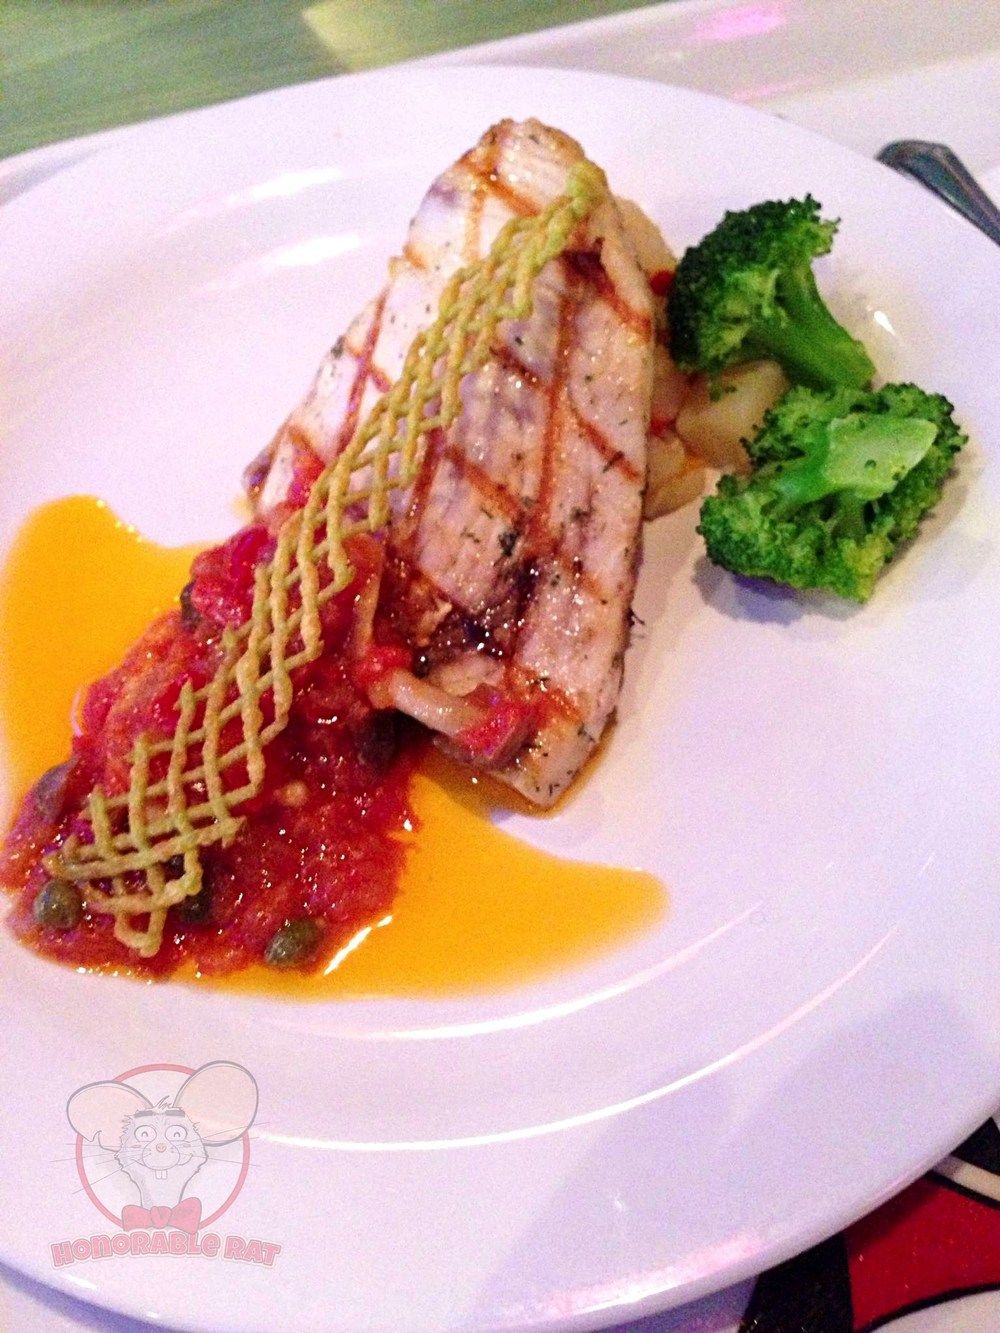 Grilled Swordfish at the Queen of Hearts Banquet Hall